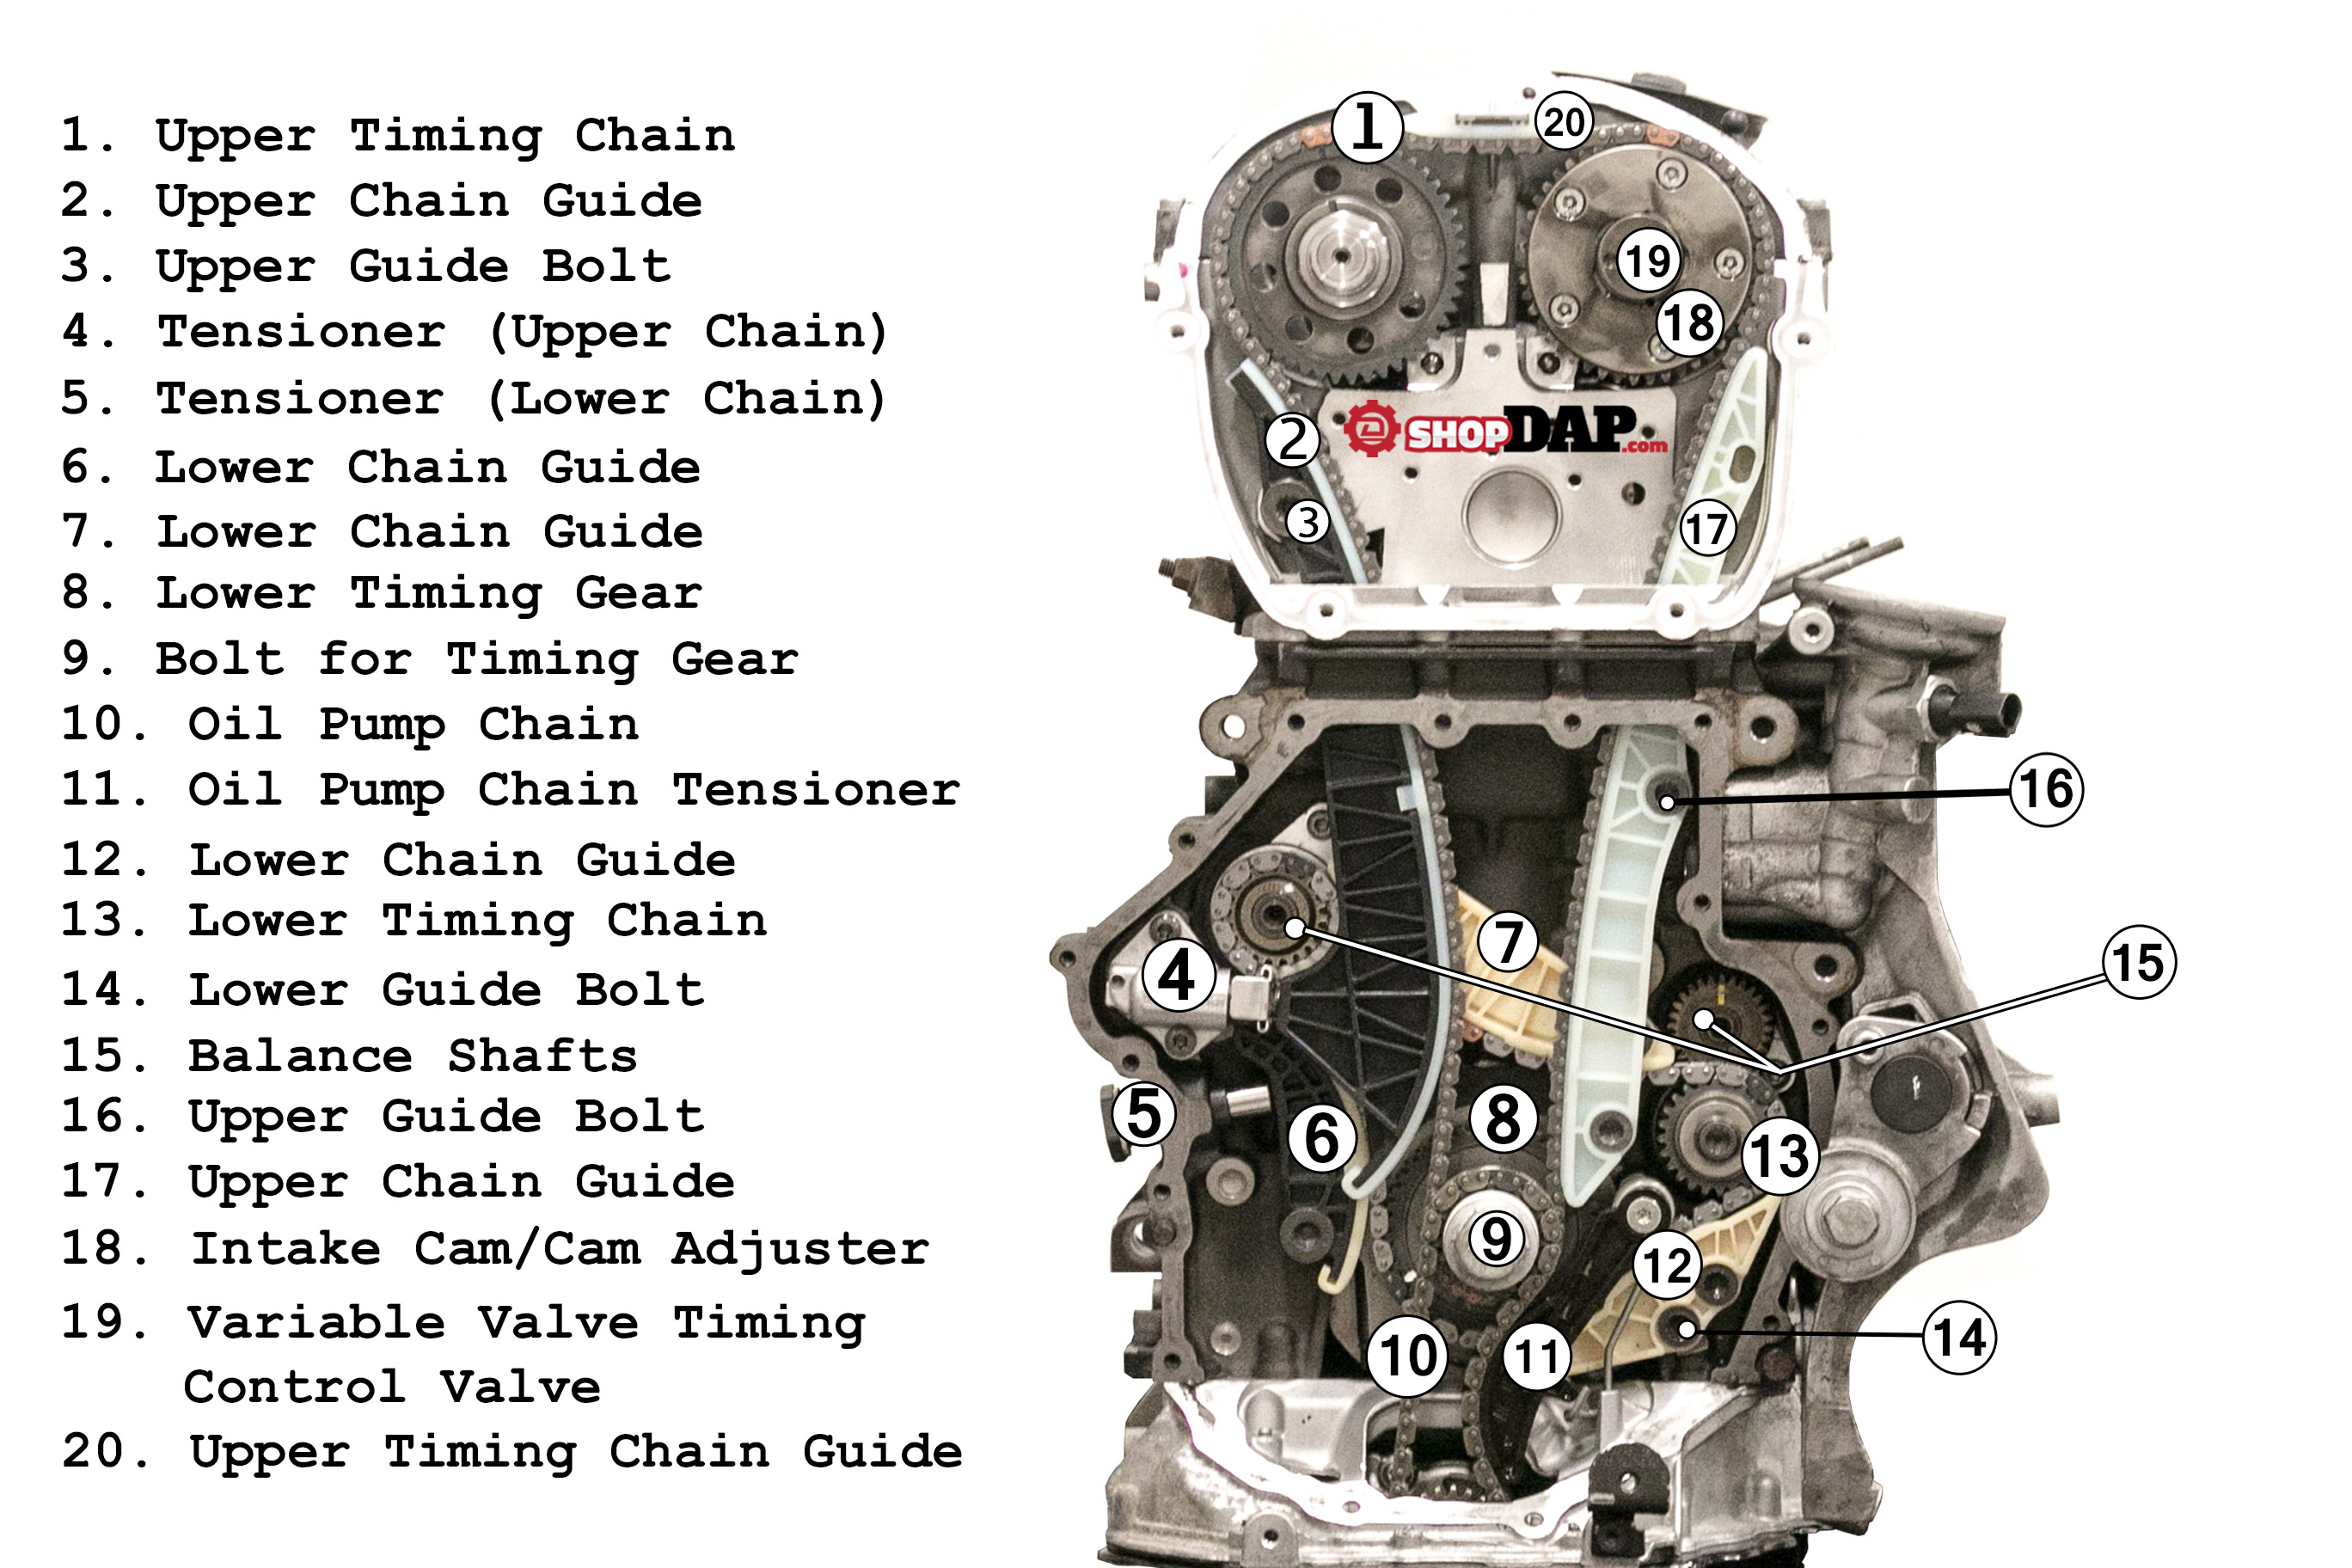 [CSDW_4250]   2.0t TSI TIming Chain Component Diagram for VW and Audi - Articles -  Deutsche Auto Parts | Vw 2 0t Engine Diagram |  | Deutsche Auto Parts